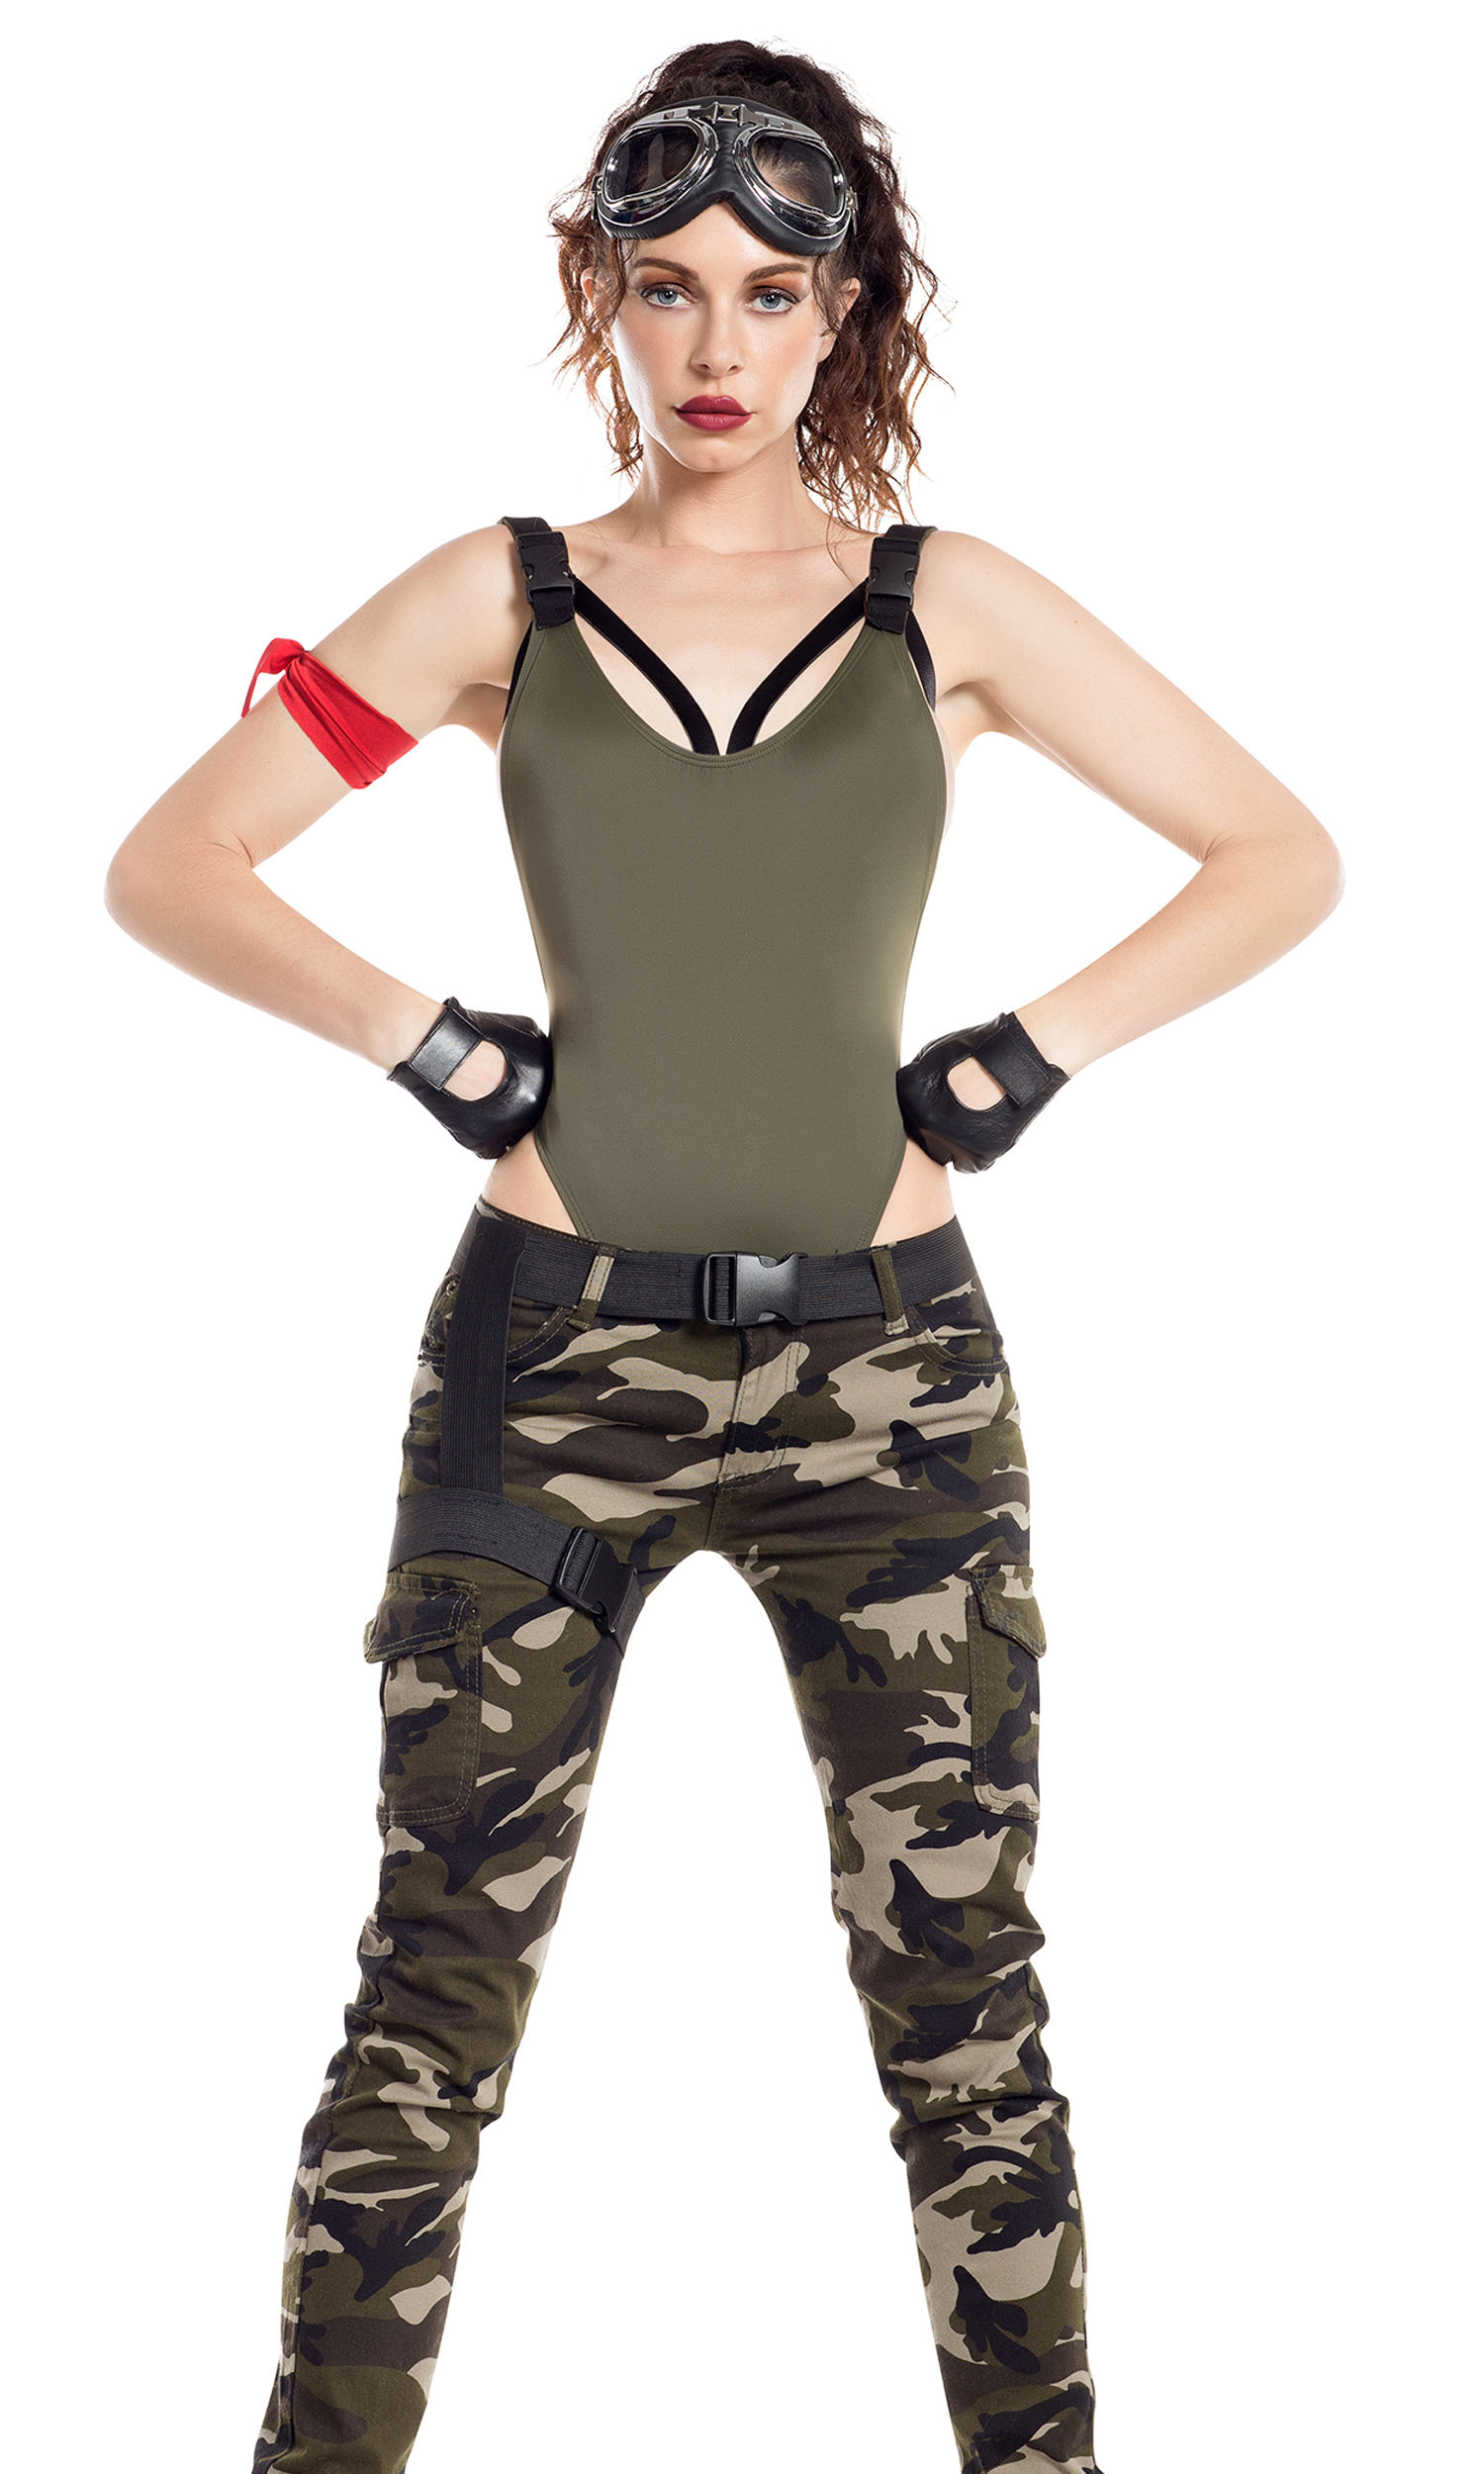 c9eae197548a8 Military Costumes | ForPlay